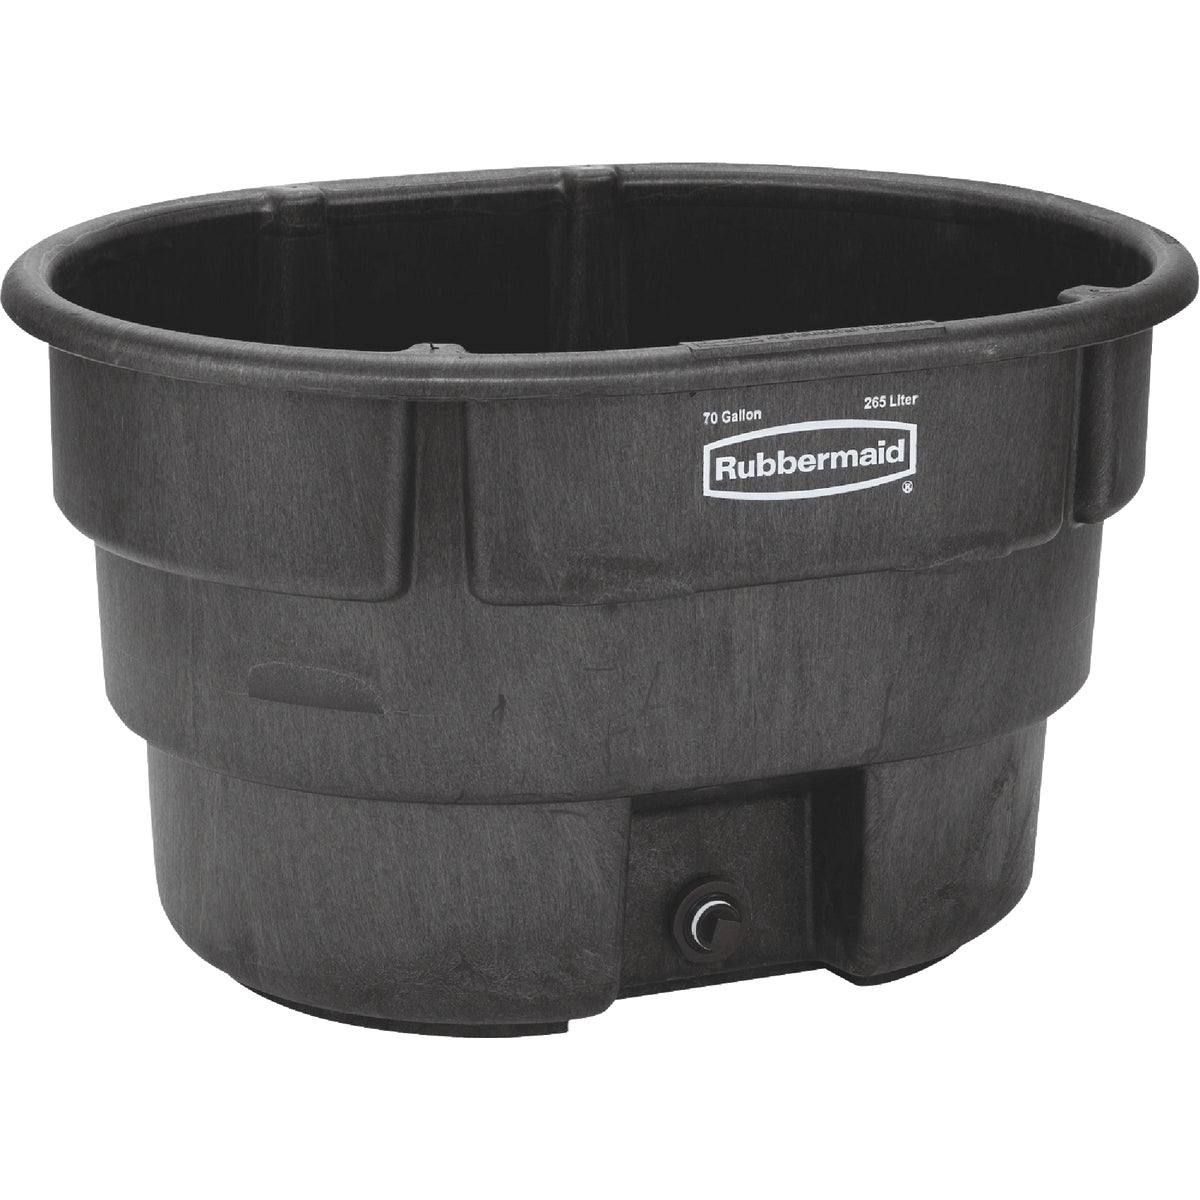 70GAL STOCK TANK - FG424400BLA by Rubbermaid Comm Prod